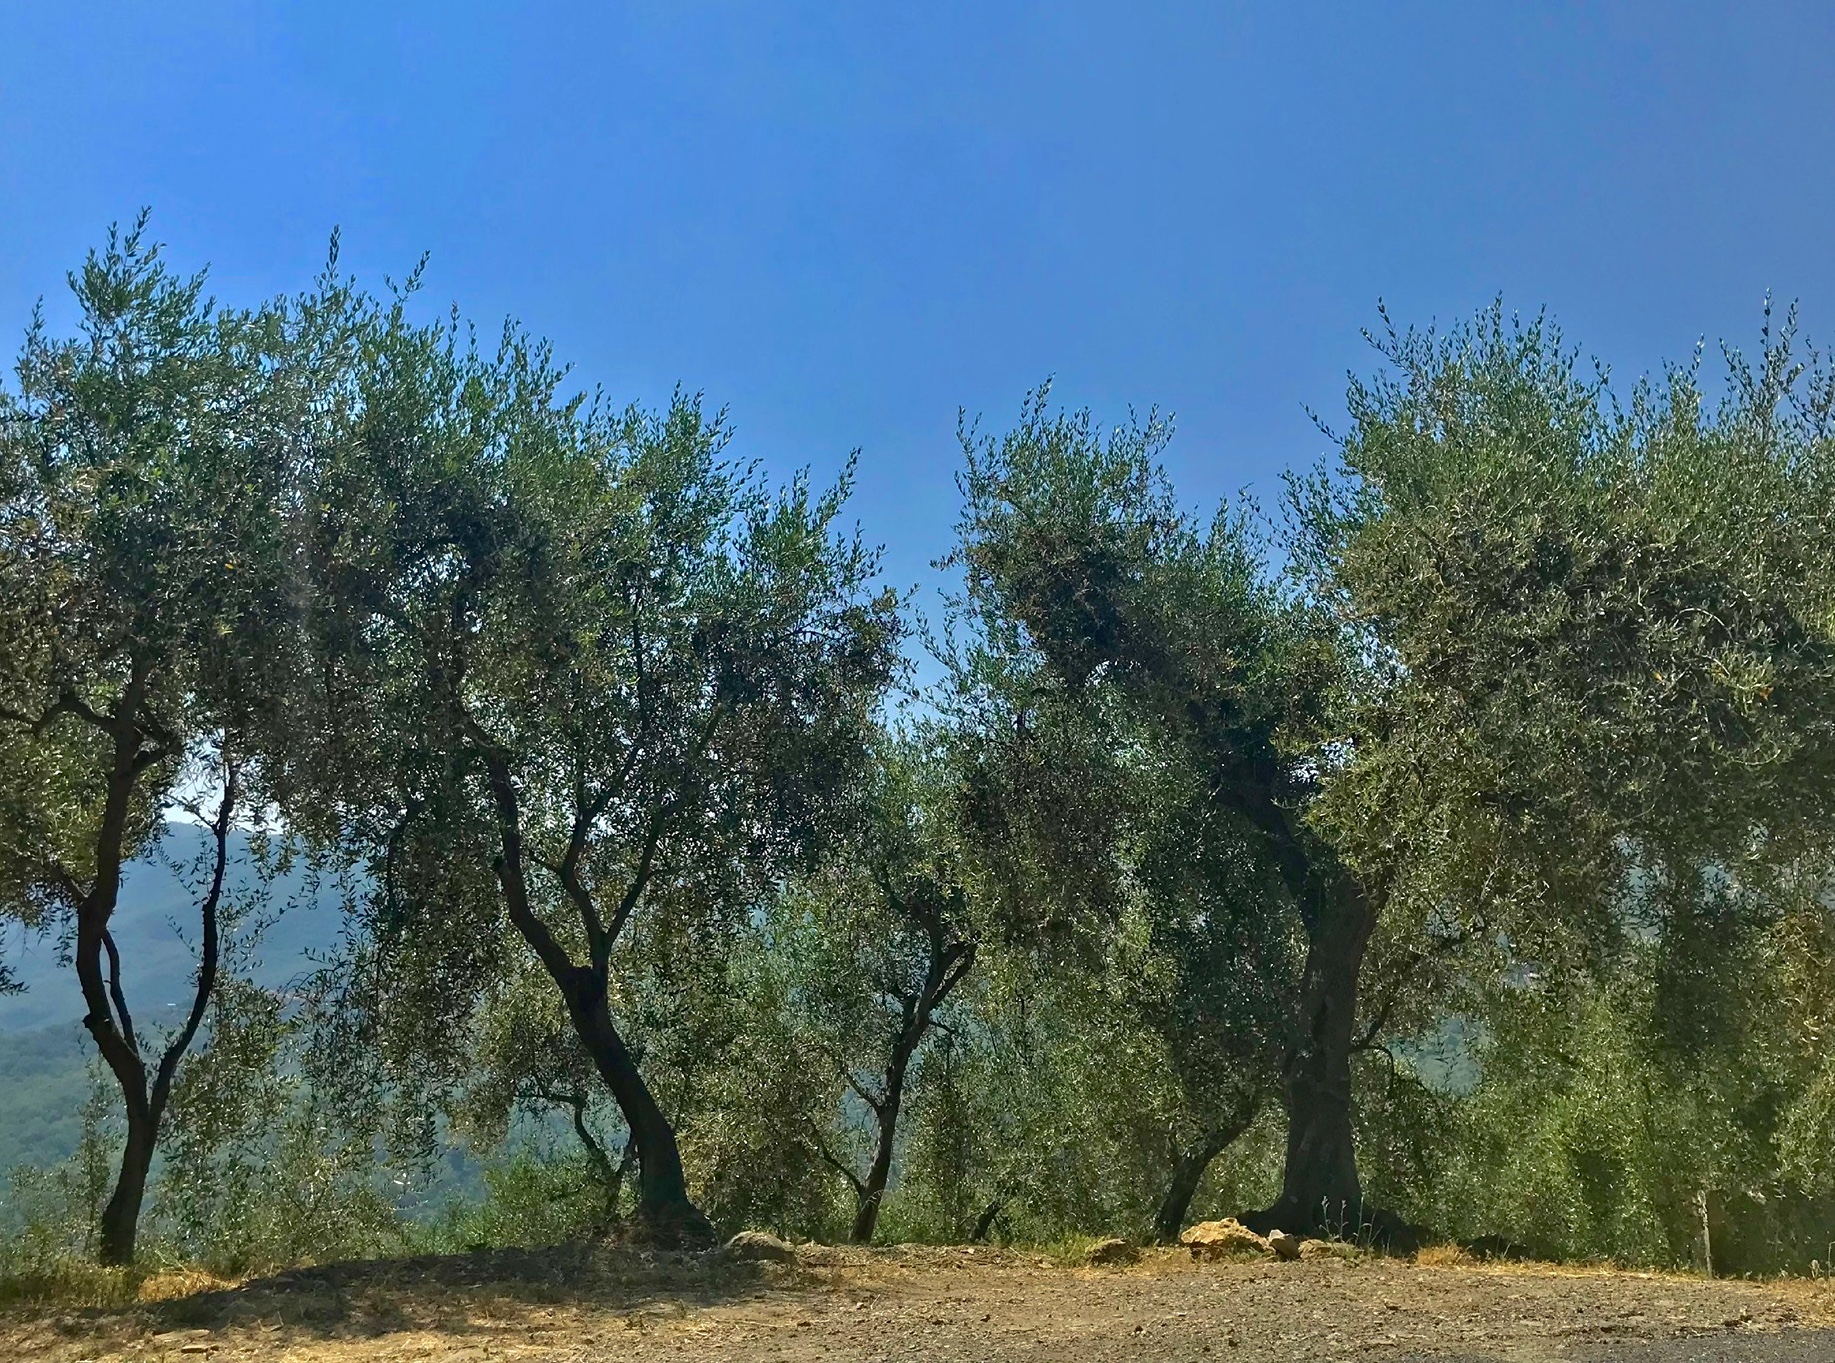 A Walk among the Olive Trees